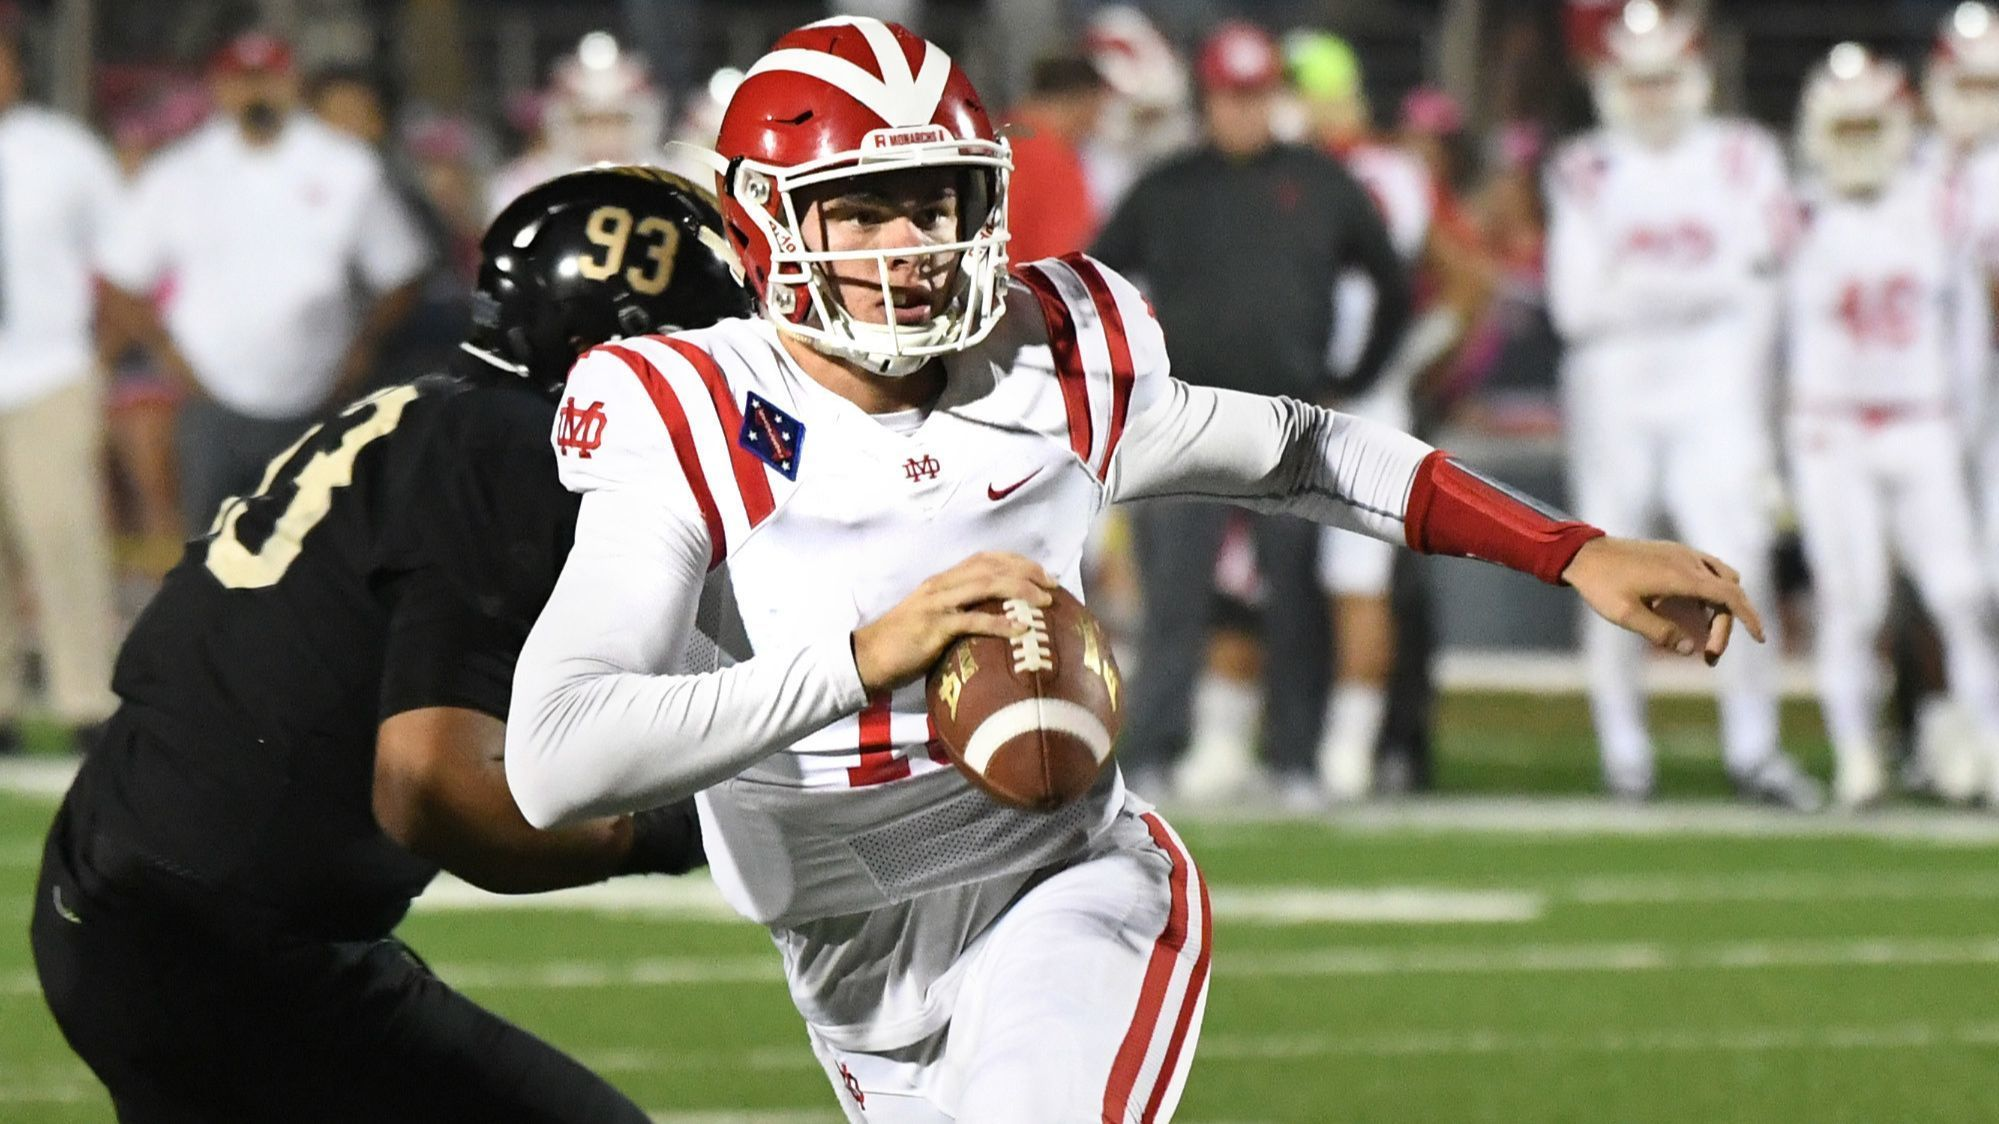 Mater Dei quarterback JT Daniels avoids the St. John Bosco def